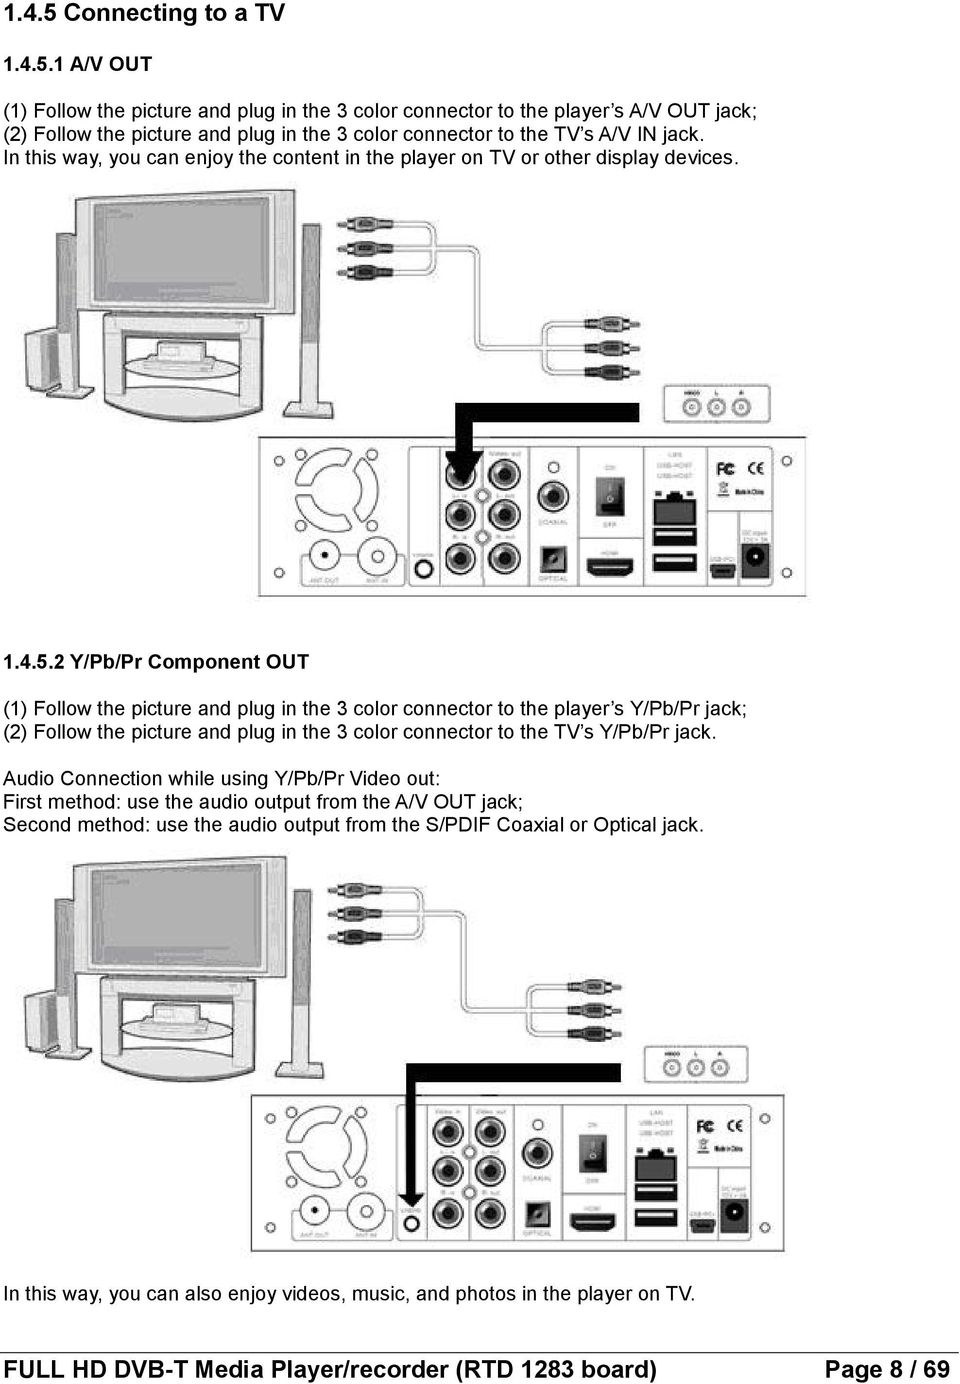 2 Y/Pb/Pr Component OUT (1) Follow the picture and plug in the 3 color connector to the player s Y/Pb/Pr jack; (2) Follow the picture and plug in the 3 color connector to the TV s Y/Pb/Pr jack.